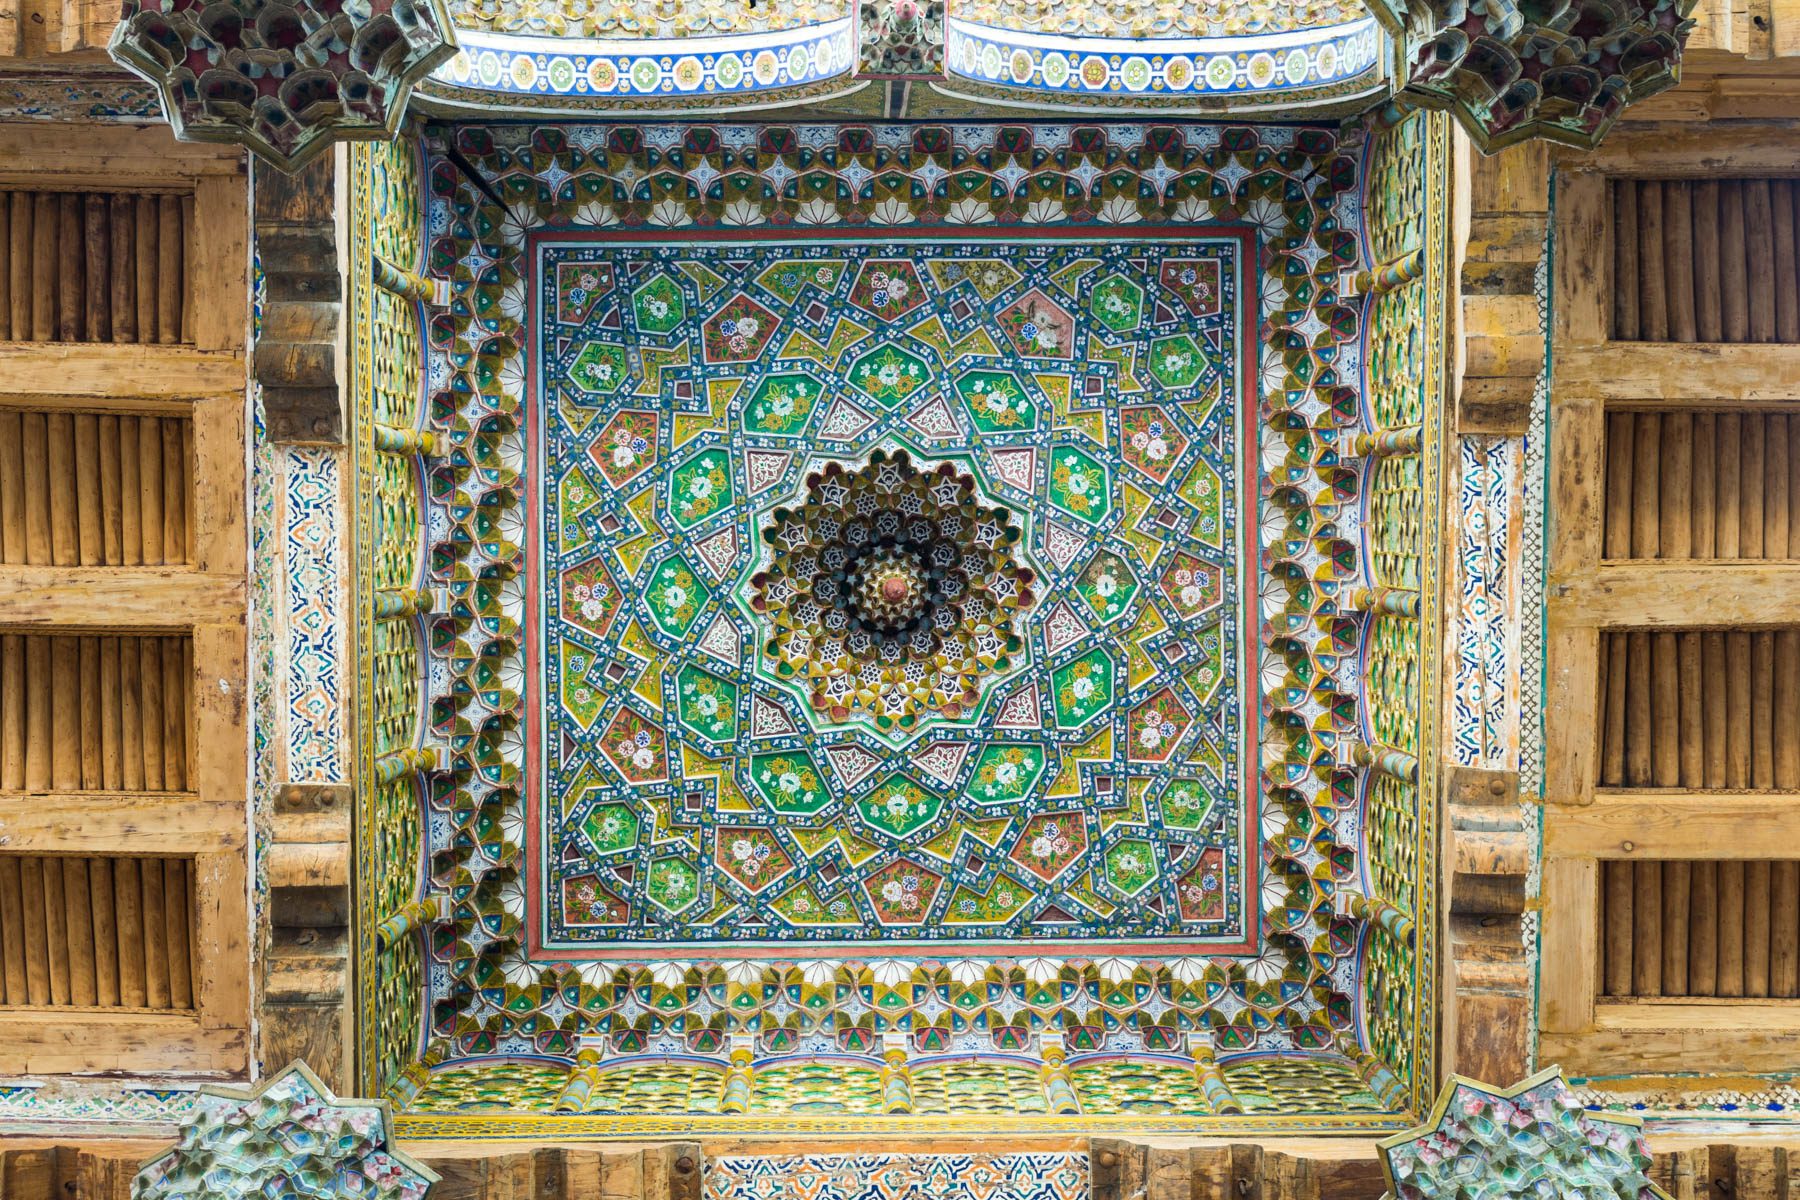 Wooden fractal ceiling of the Bolo Hauz mosque in Bukhara